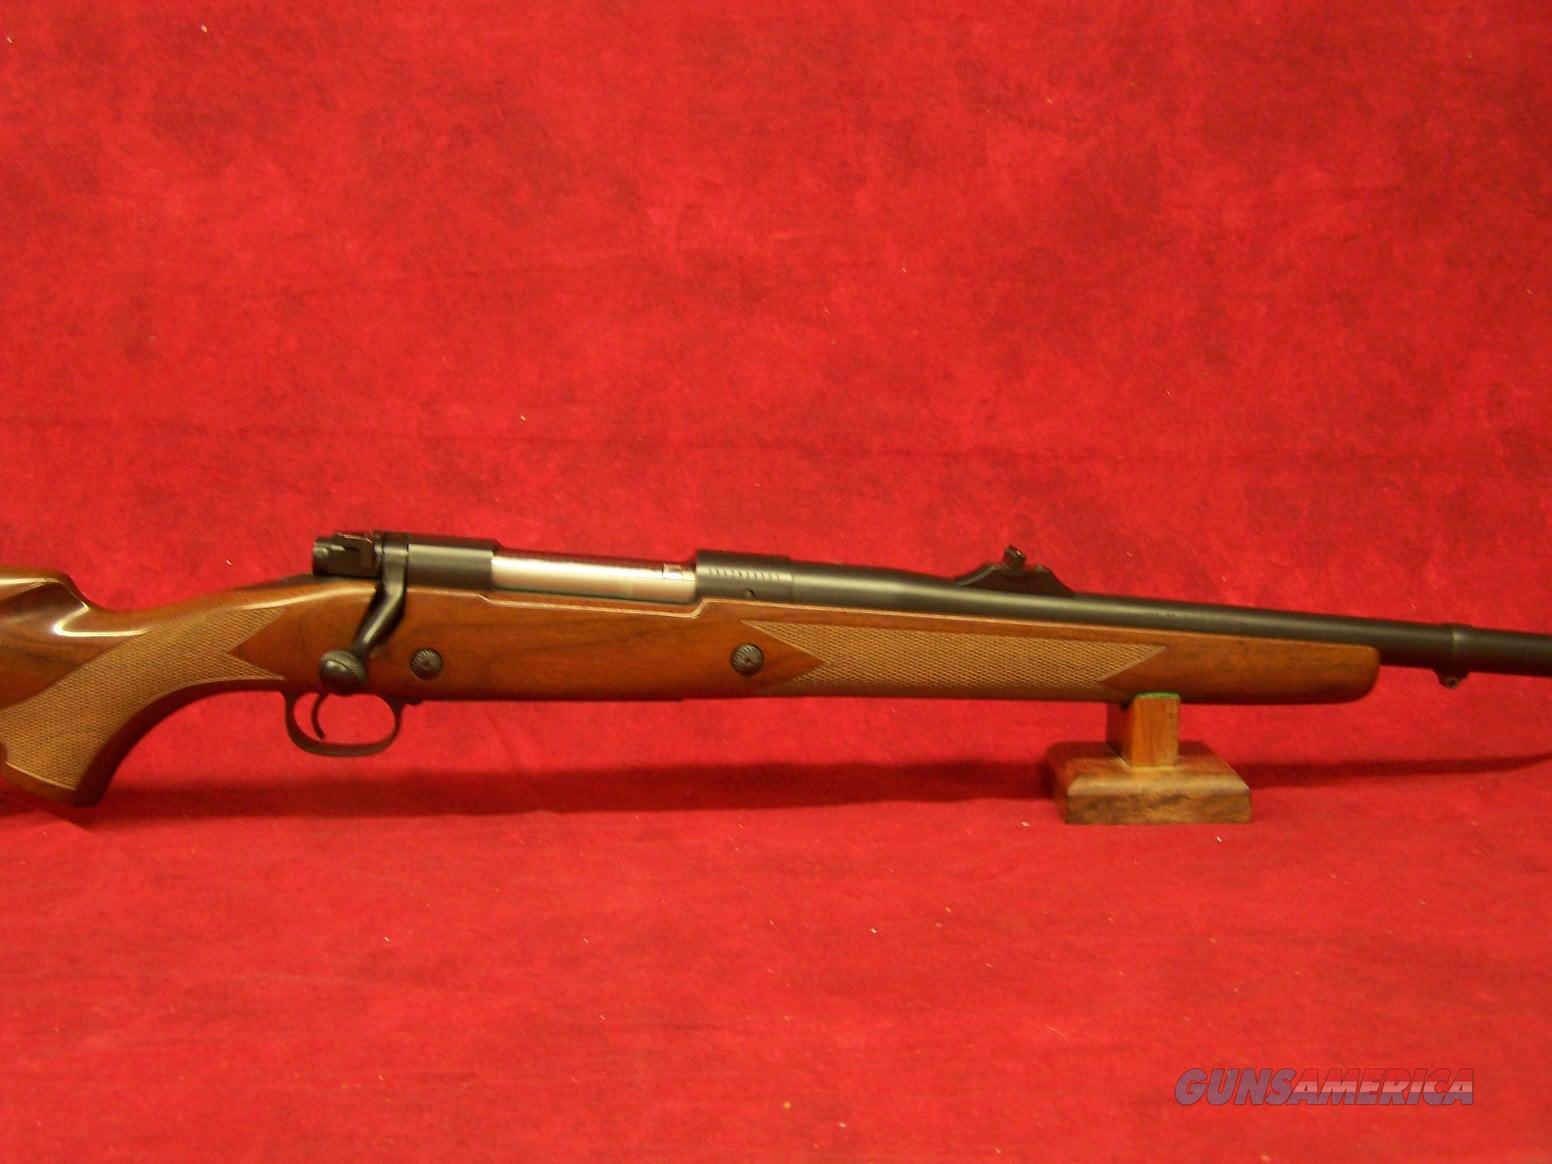 Winchester Model 70 Safari Express .375 H&H Mag with open sights.  Guns > Rifles > Winchester Rifles - Modern Bolt/Auto/Single > Model 70 > Post-64